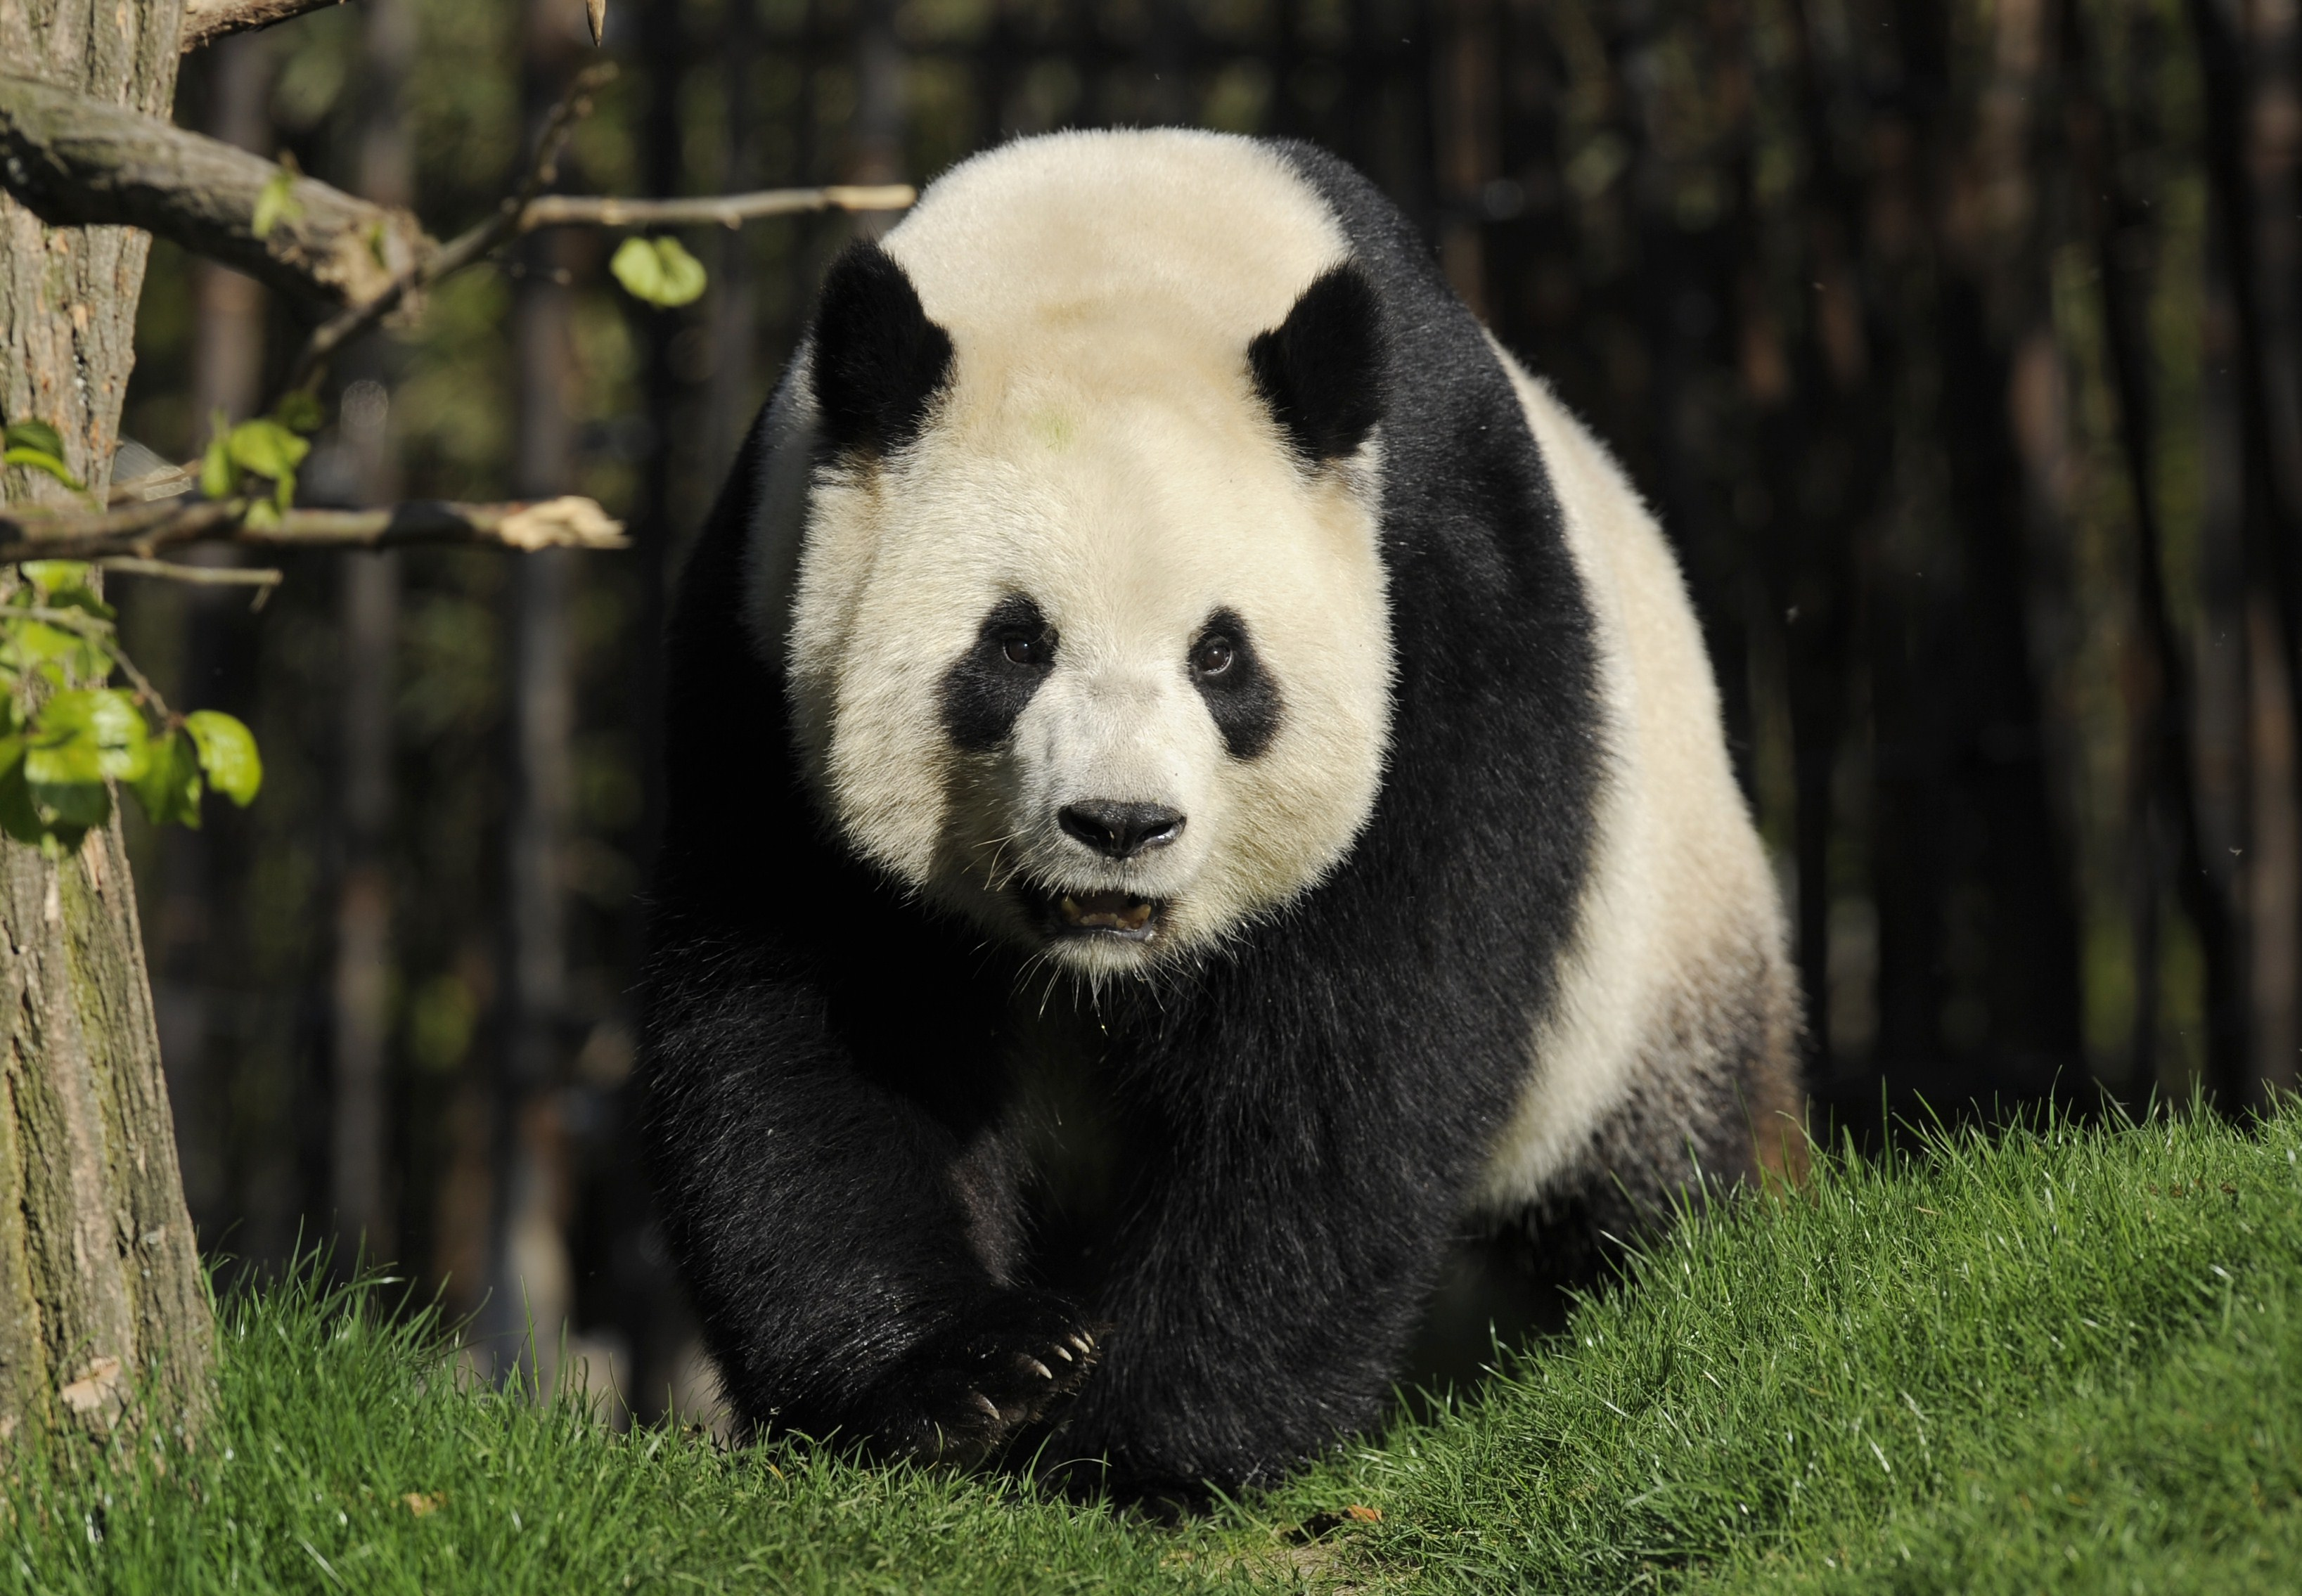 Find Out Why This Giant Panda Giving Birth Left The Zookeepers So Emotional!